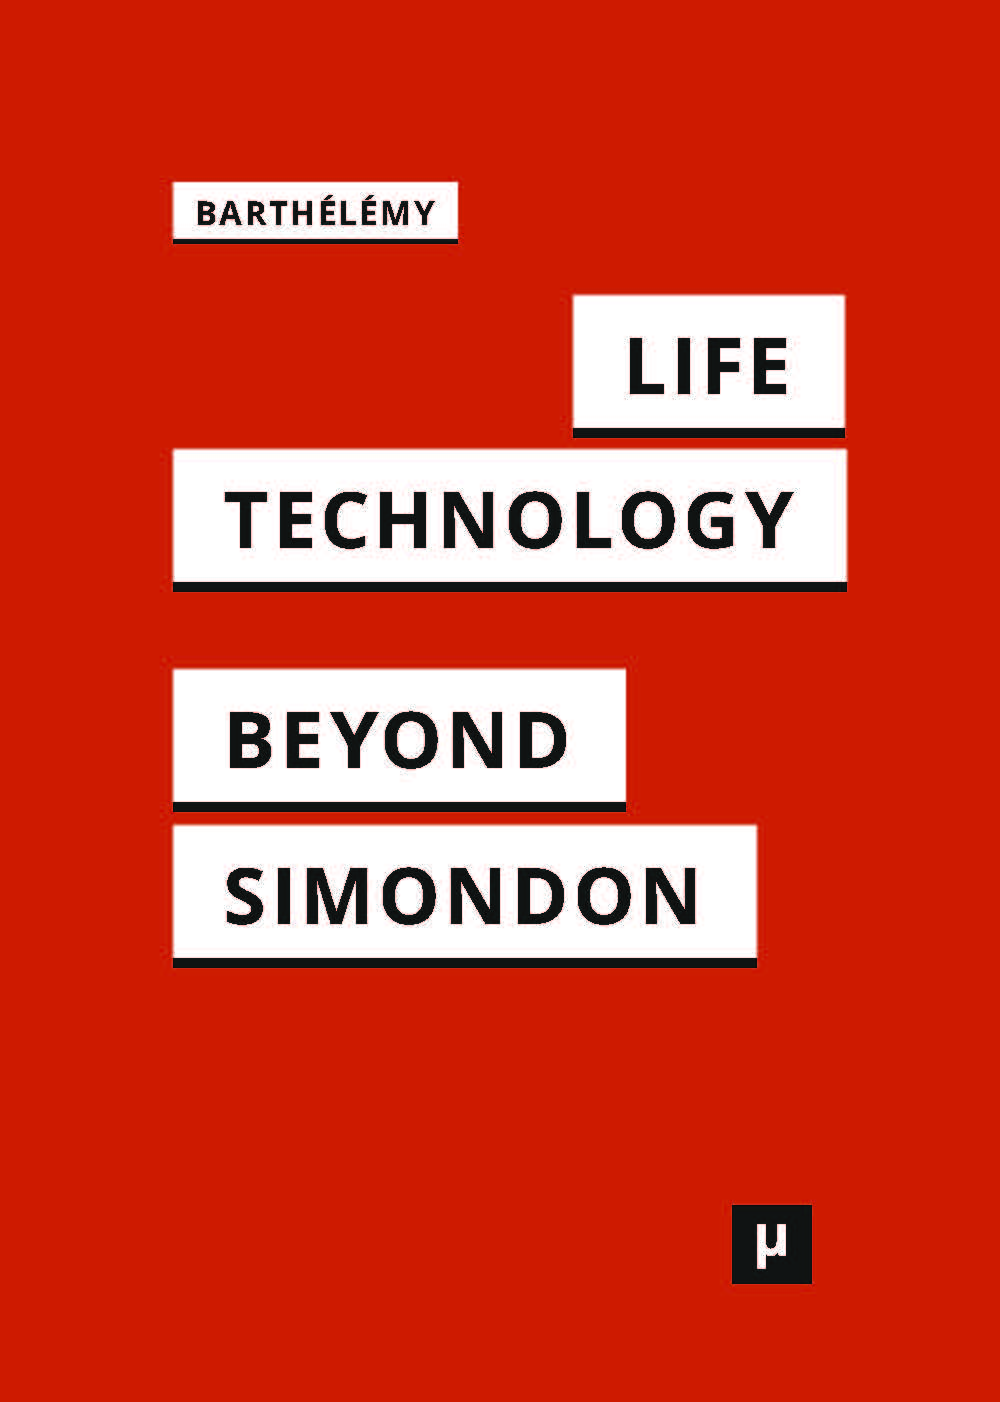 ... figure 2: »Life and Technology beyond Simondon« by Barthélémy